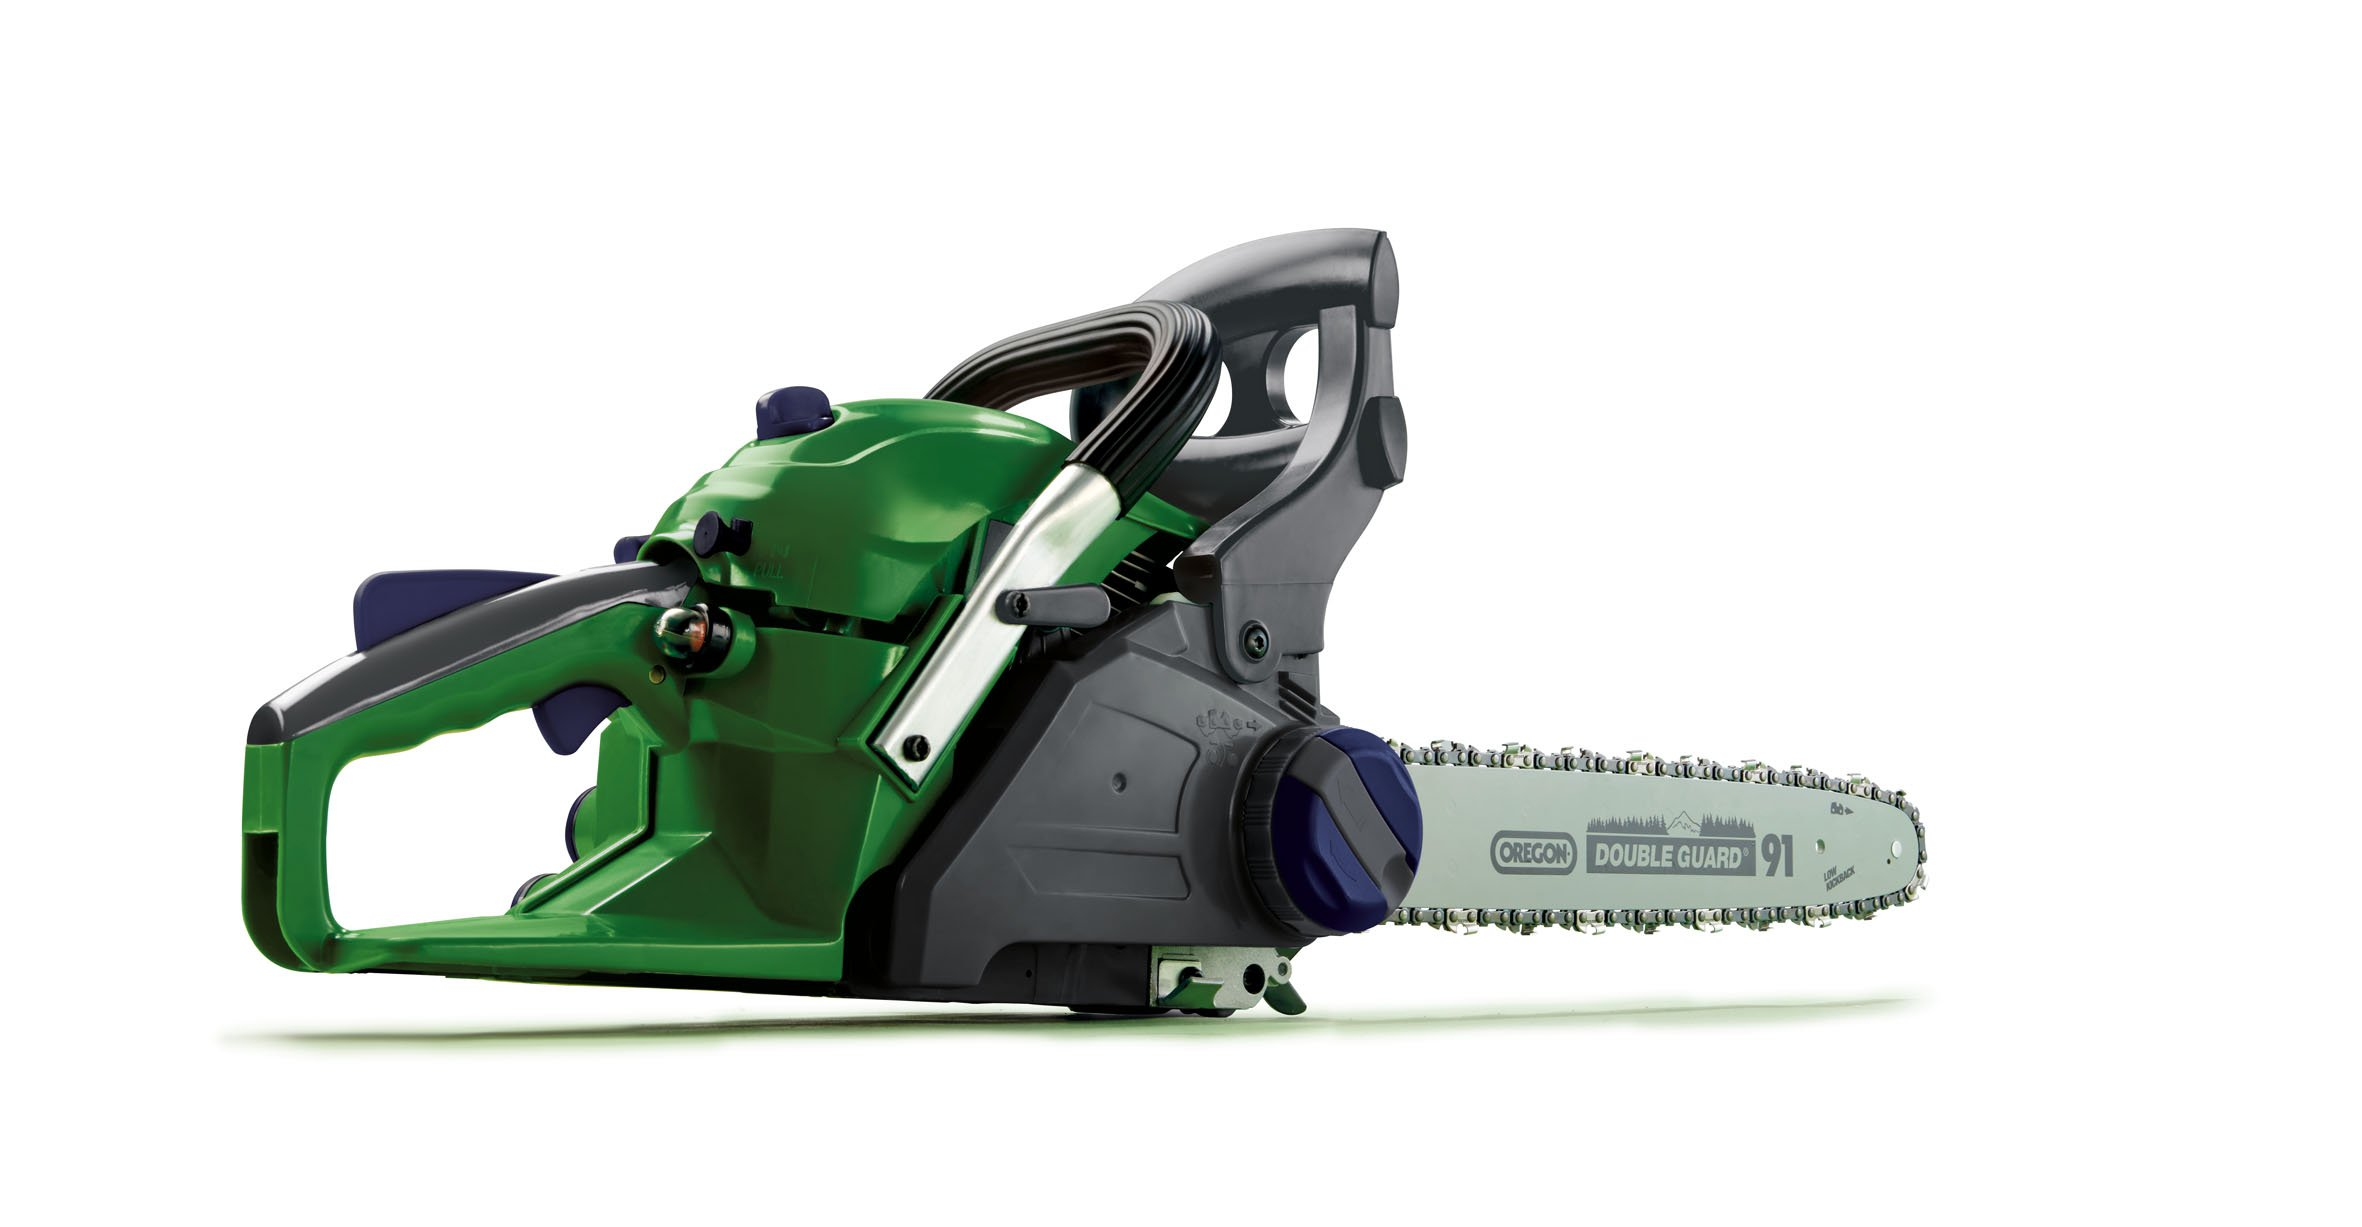 Powerbase Chainsaw Buying Guide